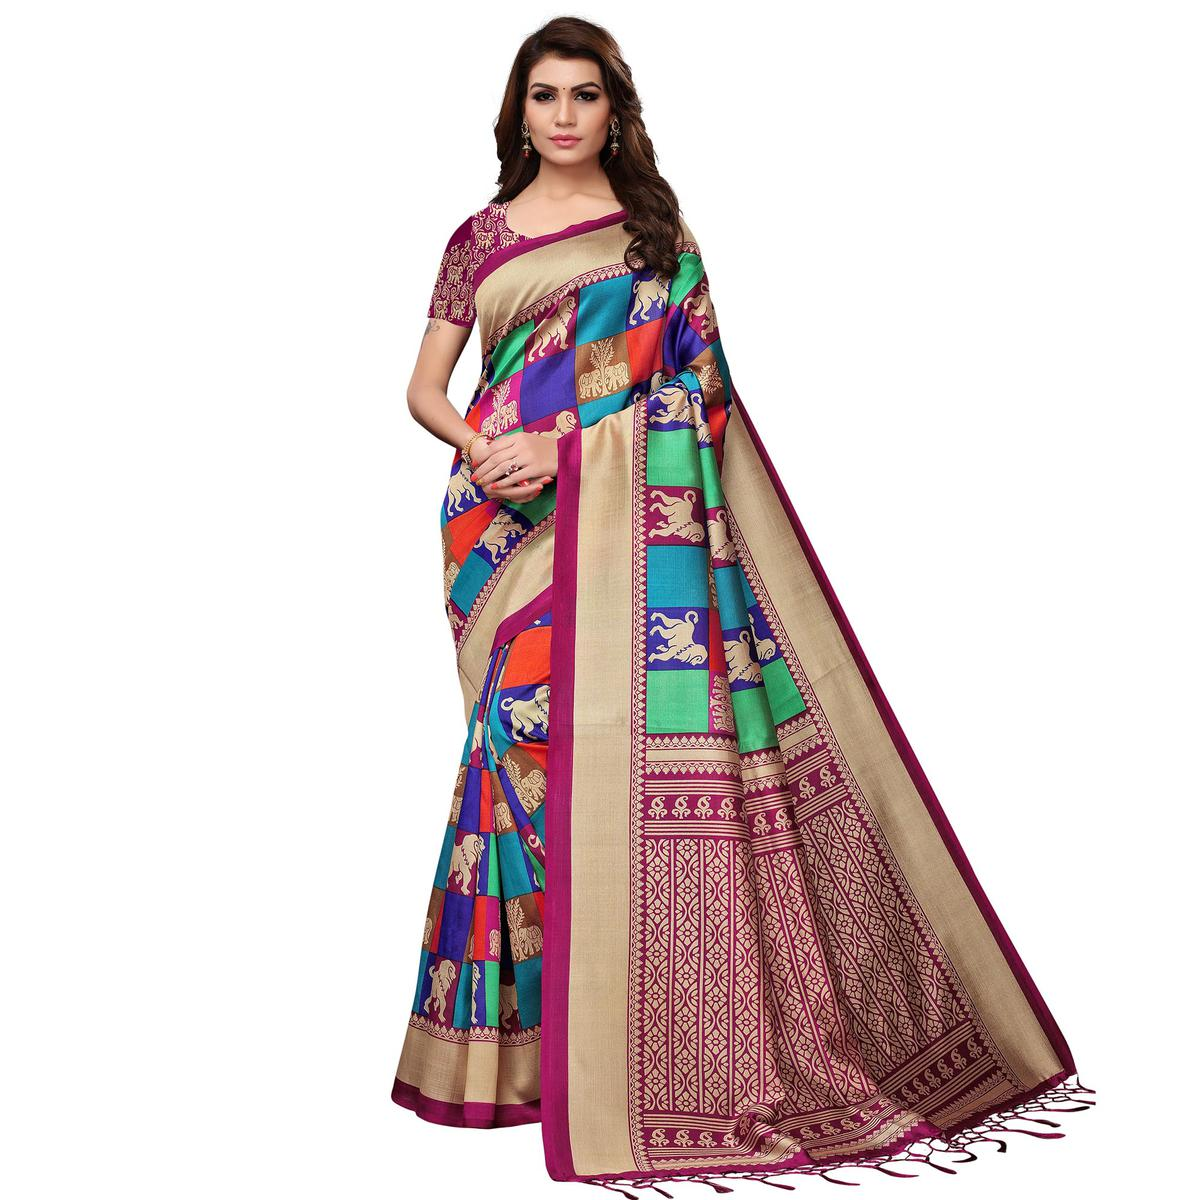 Mesmeric Multi - Magenta Pink Colored Festive Wear Printed Mysore Silk Saree